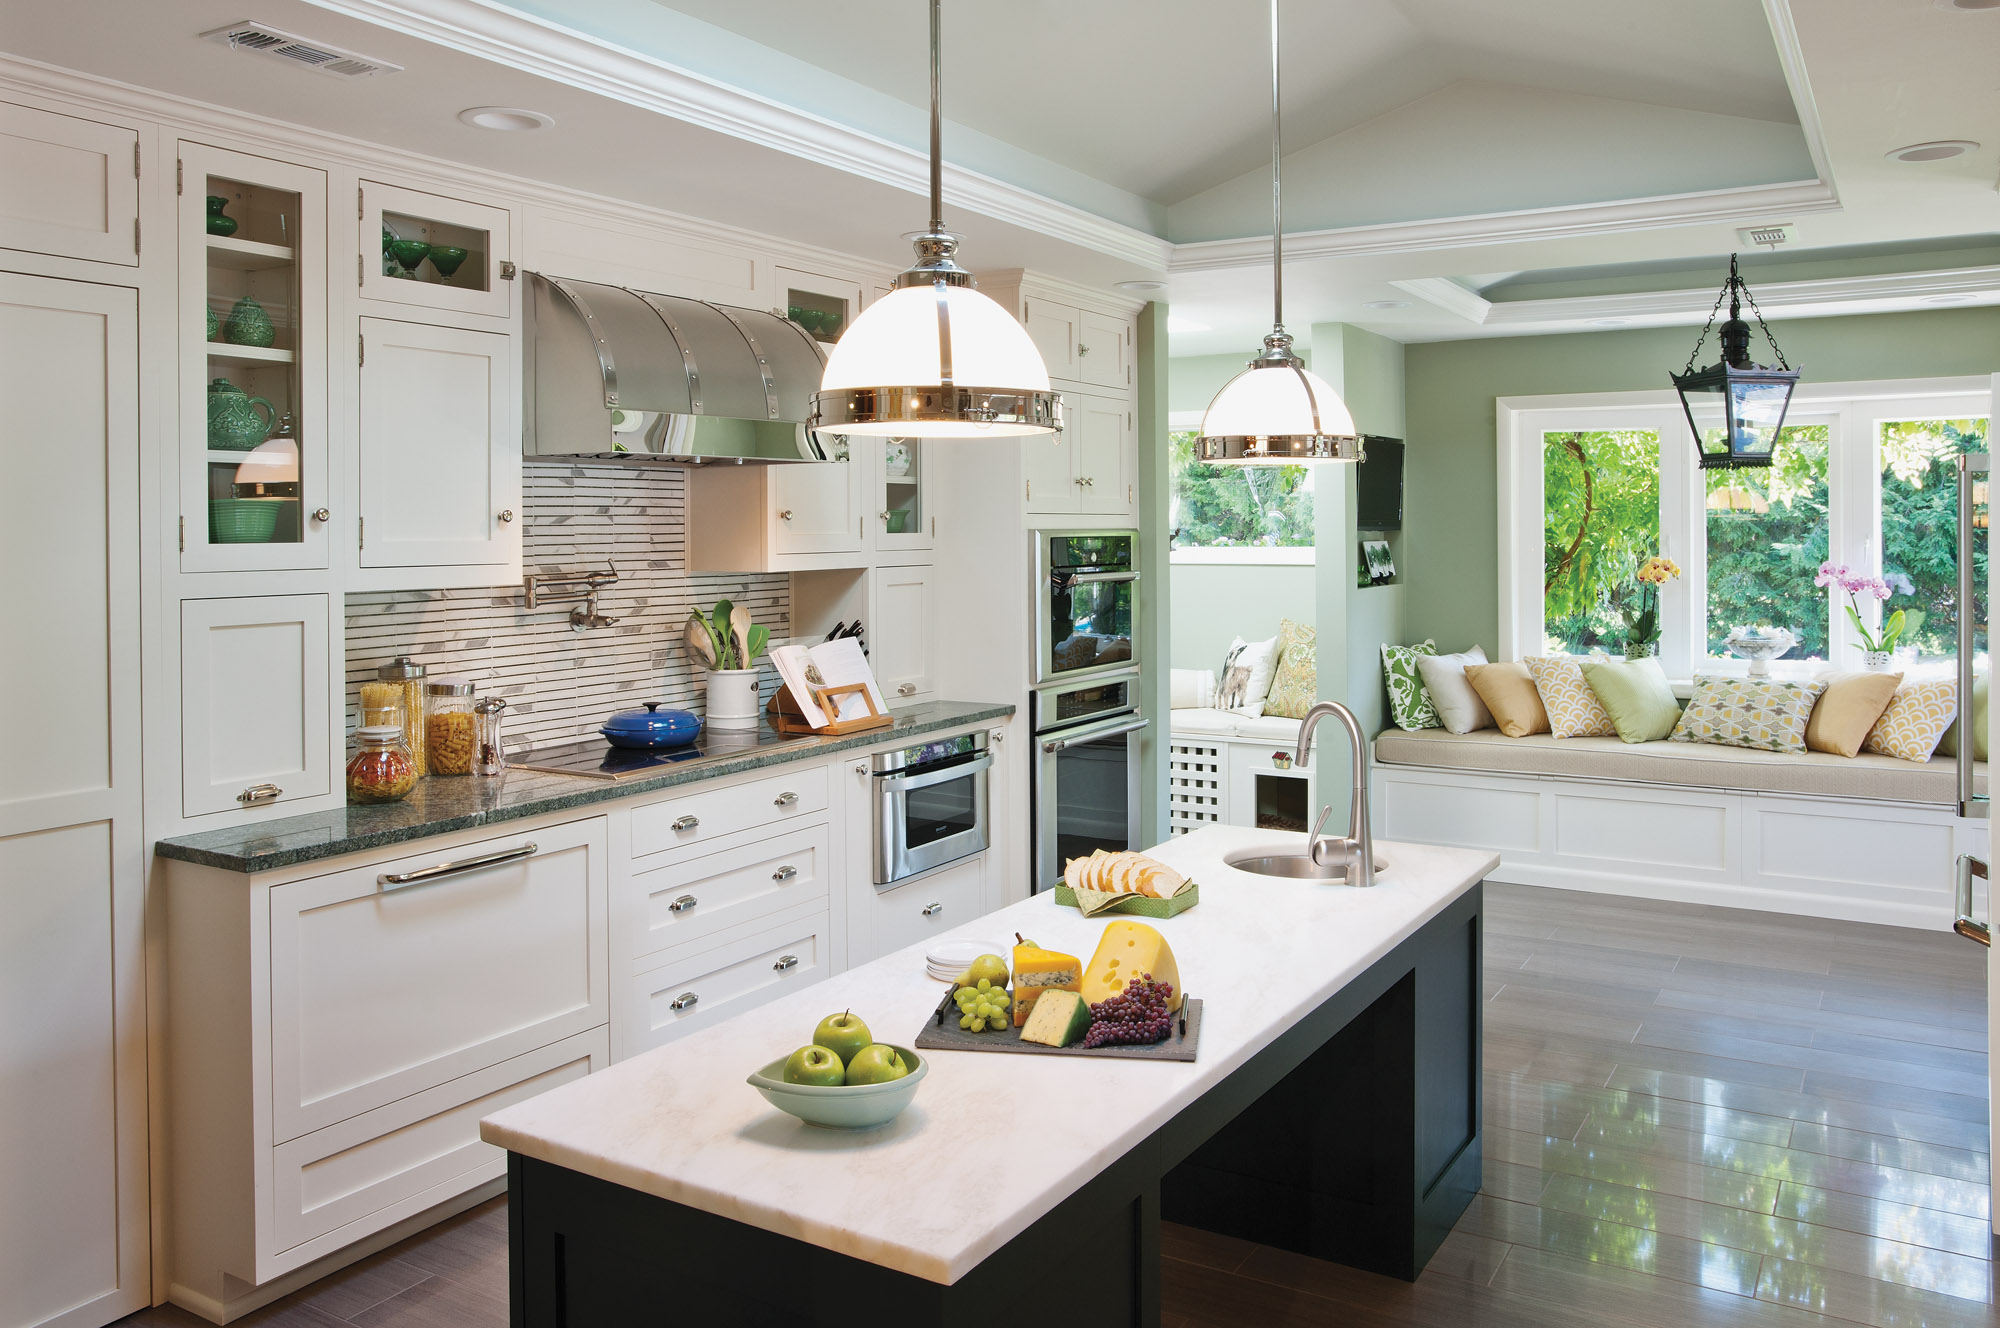 Good lighting, maneuverability, and well-placed appliances are practical solutions for an accessible kitchen enjoyed by all members of the household.